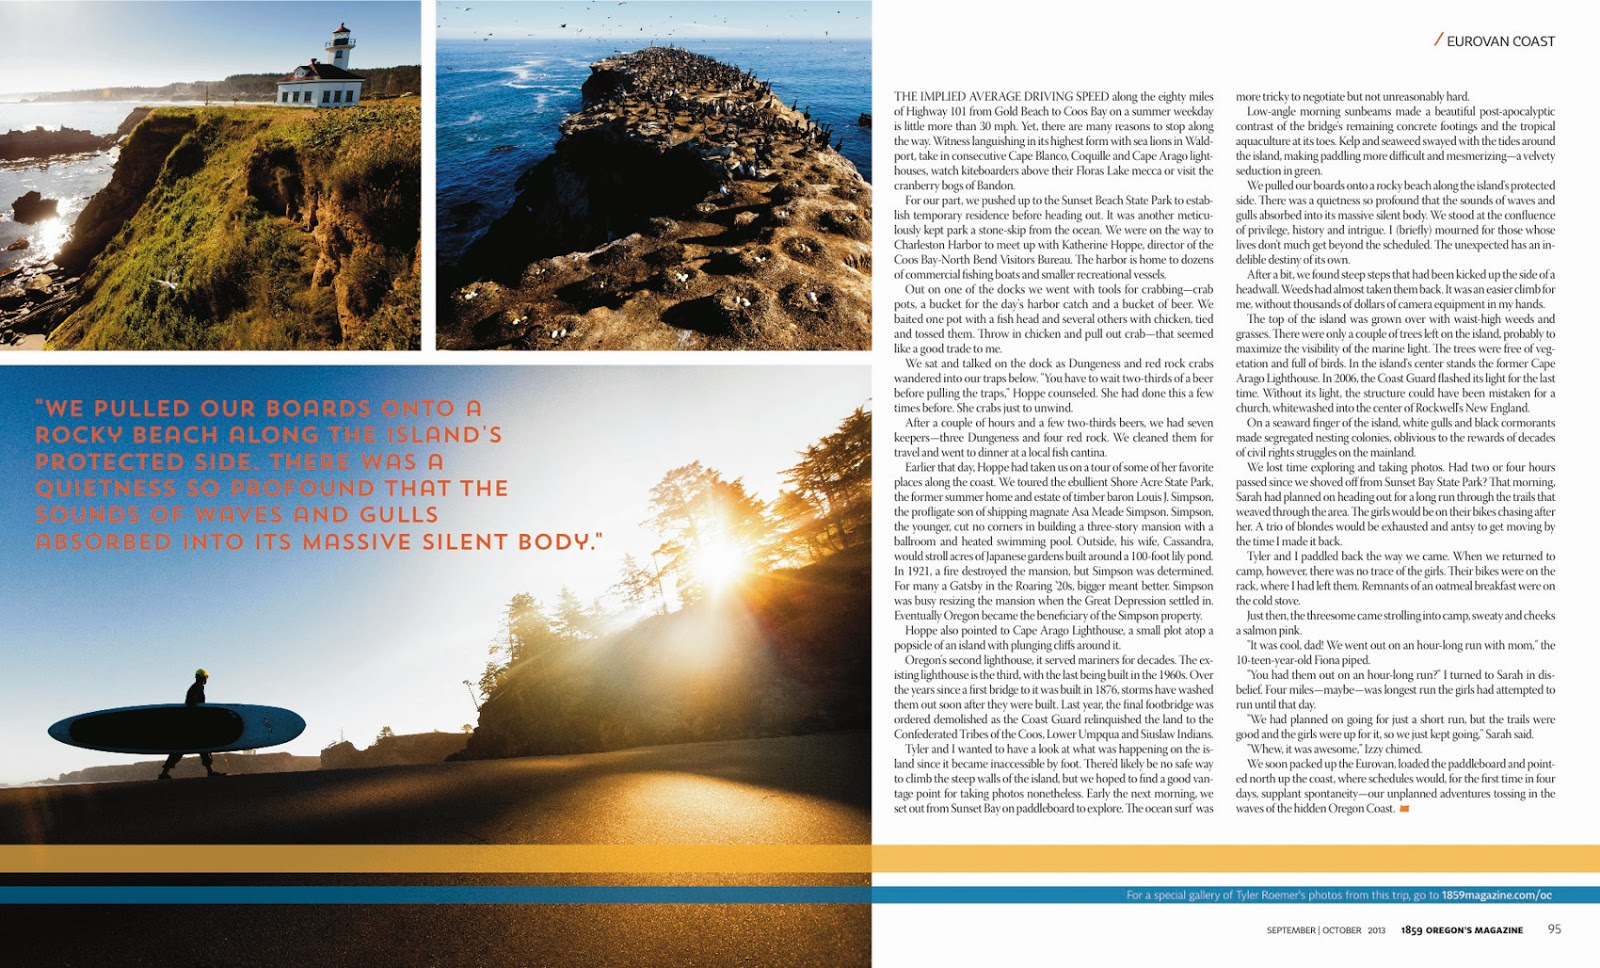 VW On The OC 1859 Magazine Outdoor Adventure Action Sports